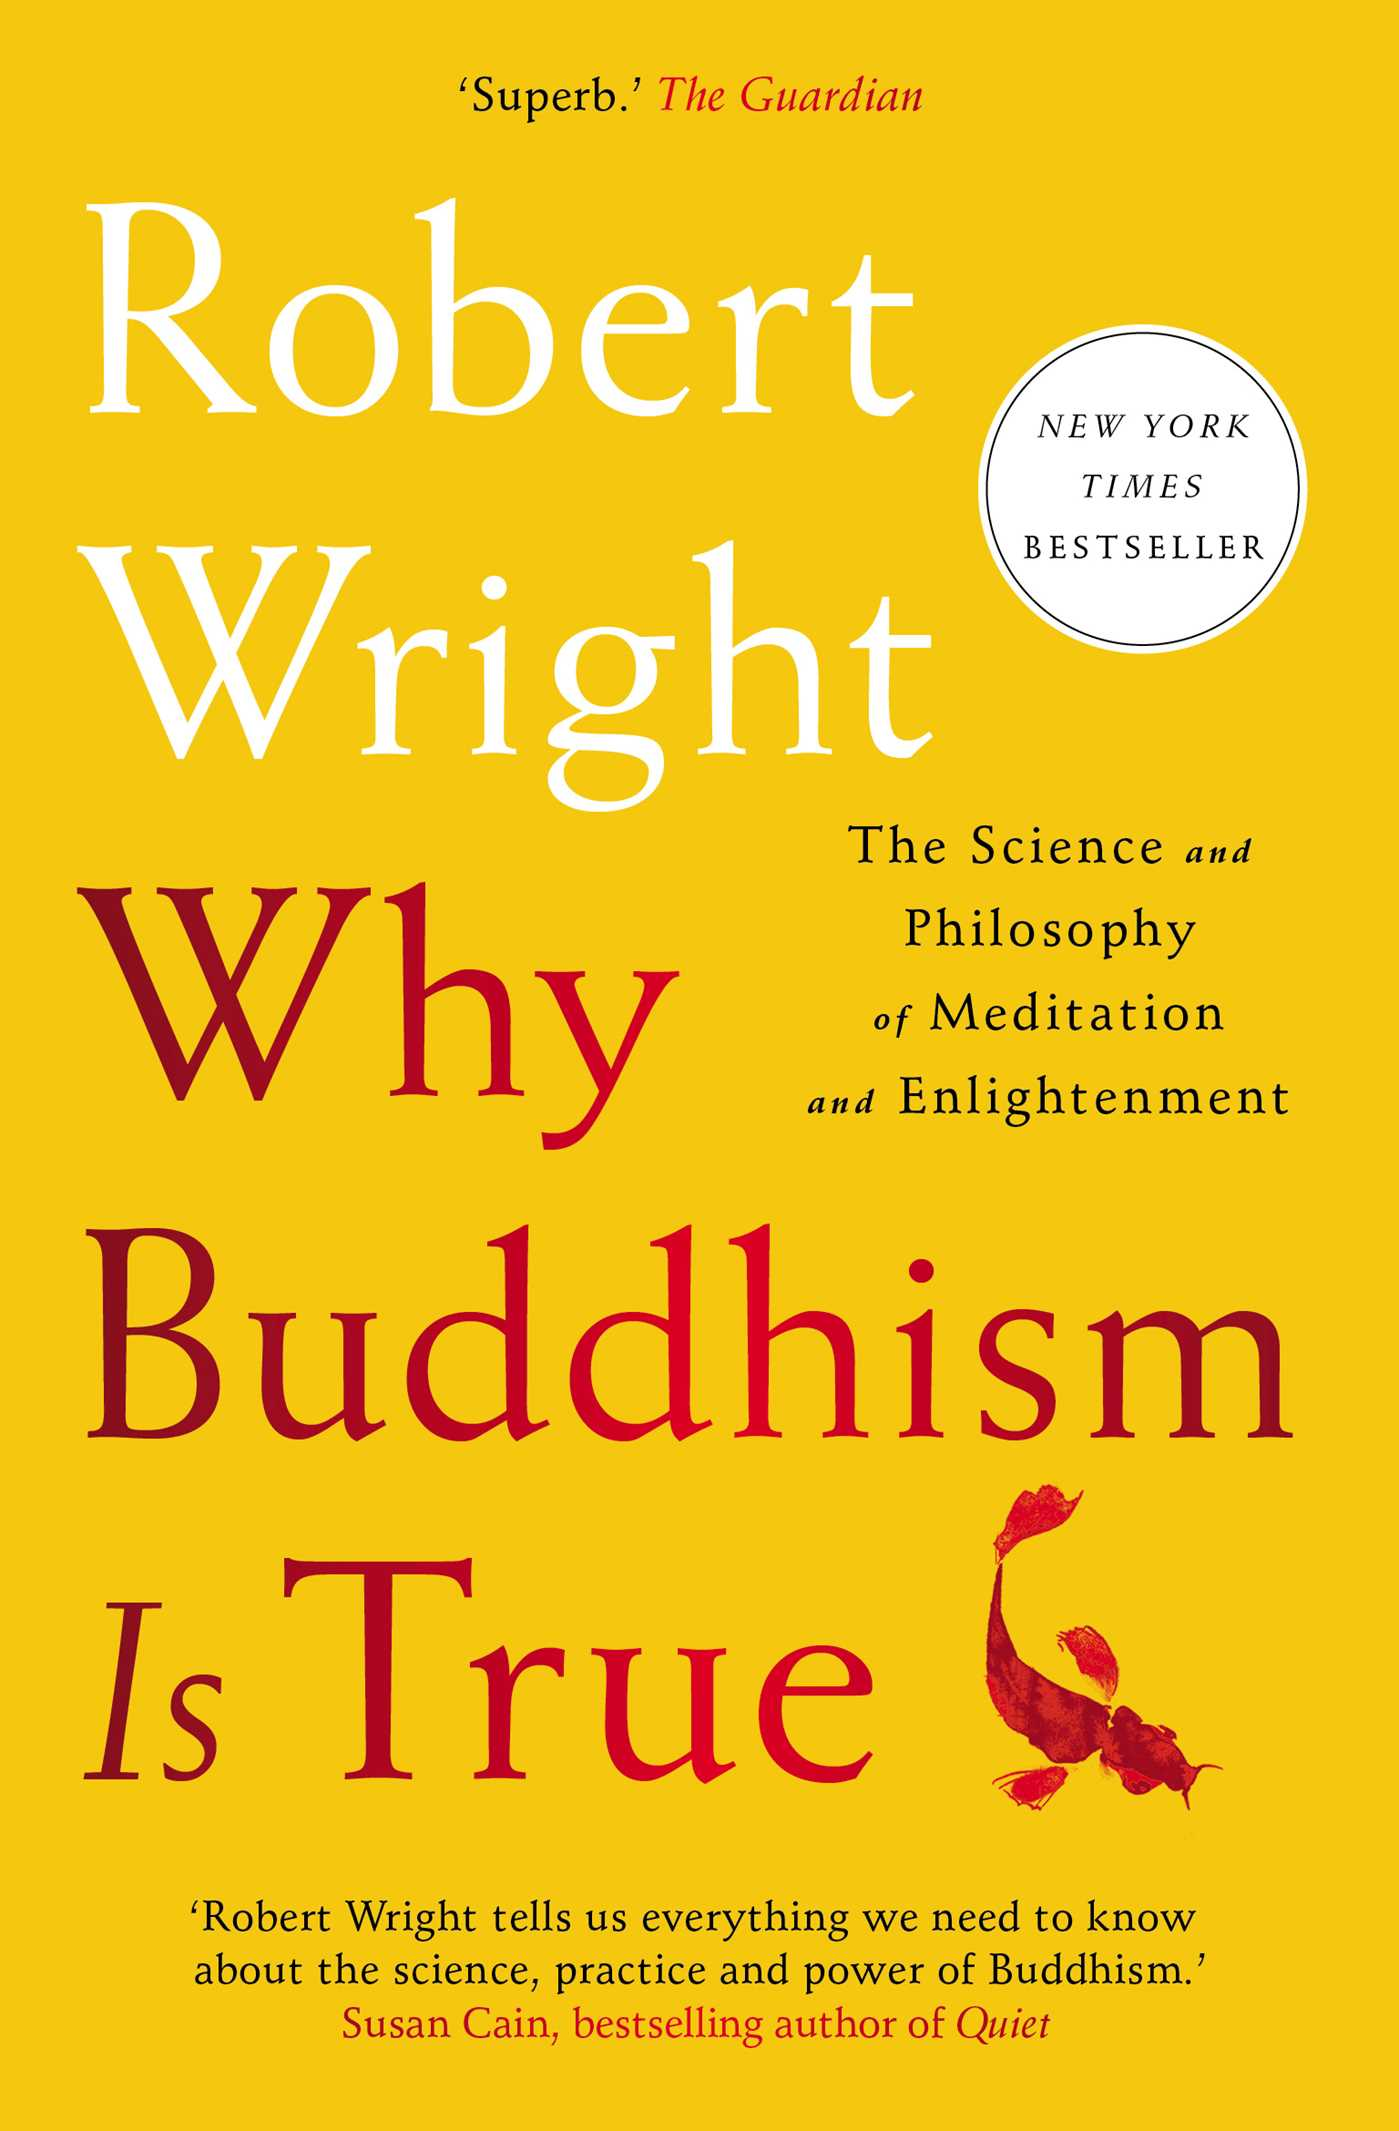 Why Buddhism is True [EBOOK] The Science and Philosophy of Meditation and Enlightenment